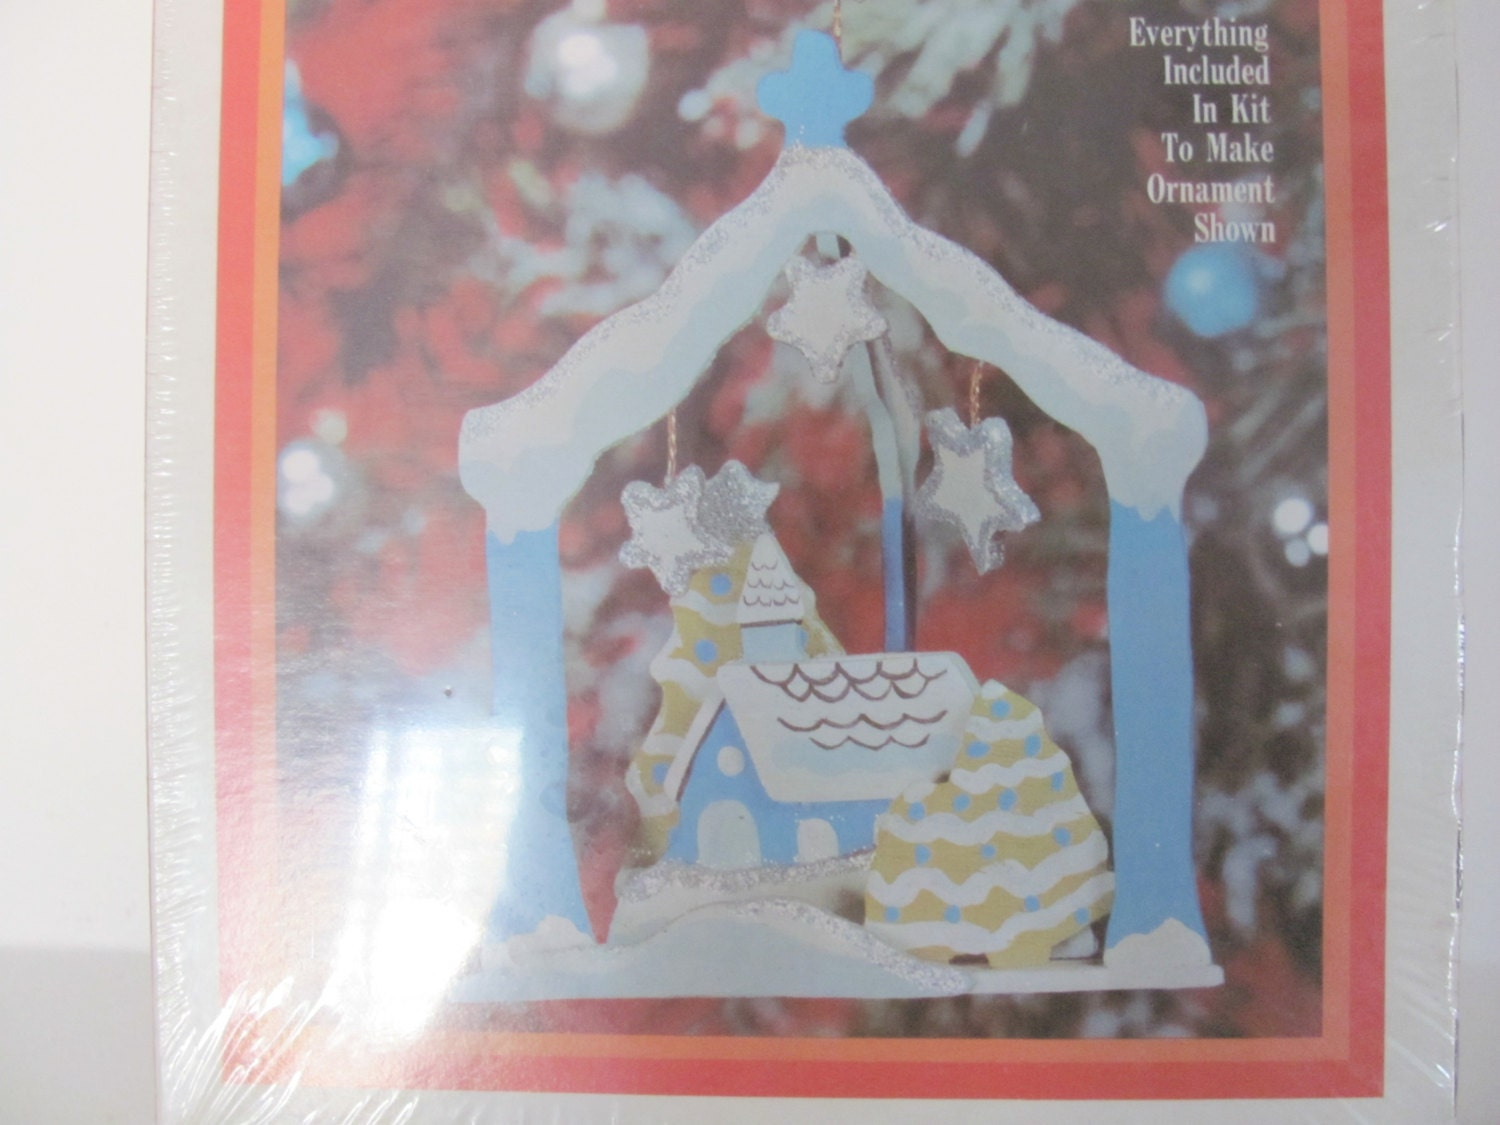 Craft master paint by number kits -  Craft Master Paint By Number Wood Ornament Kit Winter House Ornament Christmas Decor Sold By Thirstyowlvintage